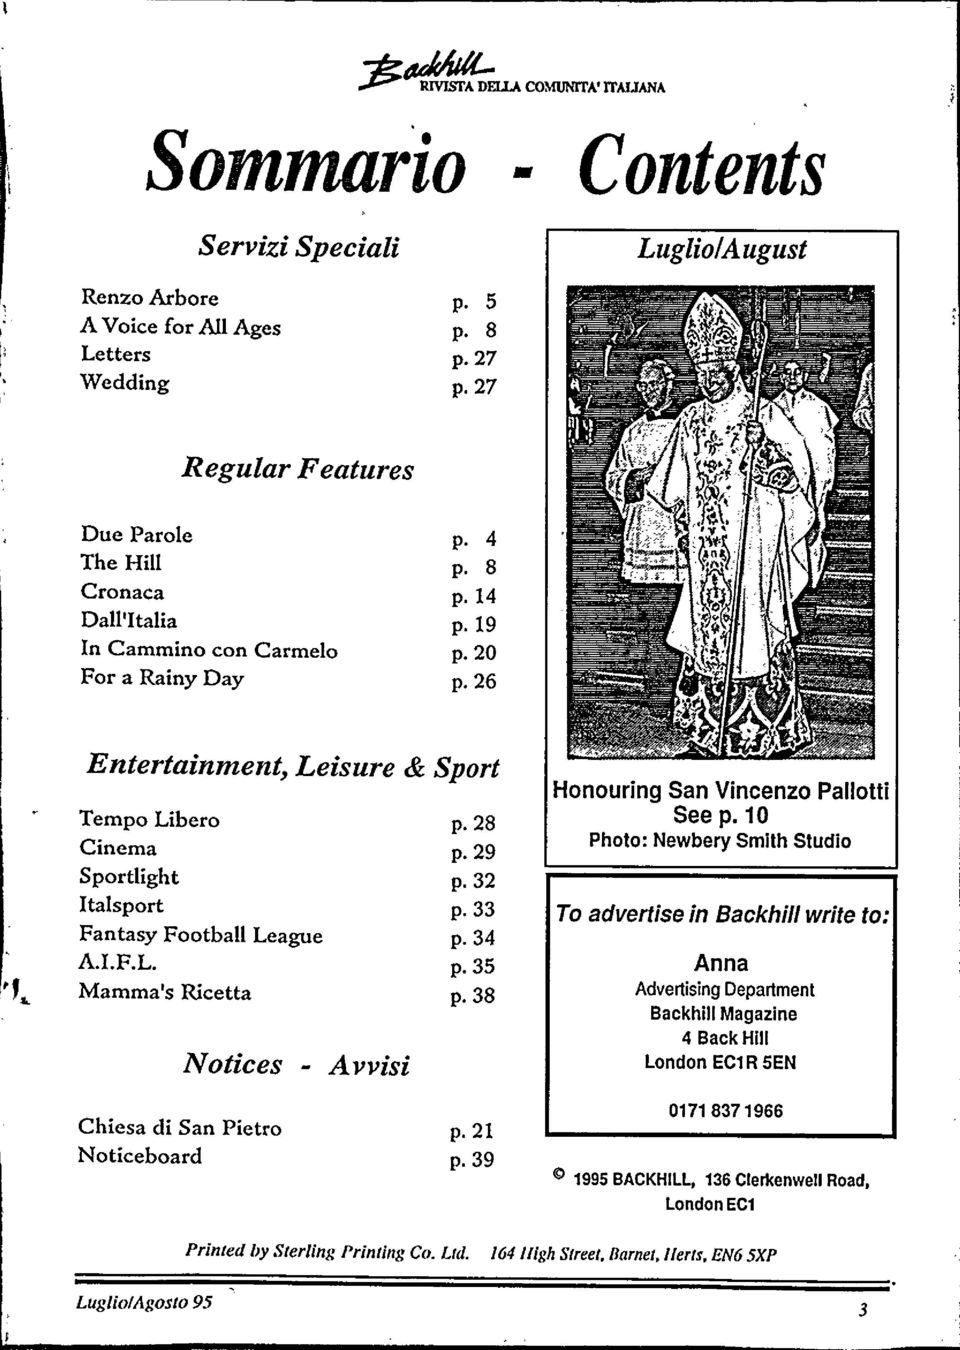 .. Entertainment, Leisure & Sport Tempo Libero Cinema Sportlight Italsport Fantasy Football League A.I.F.L. Mamma's Ricetta Notices - A vvisi p.28 p.29 p.32 p.33 p.34 p.35 p.